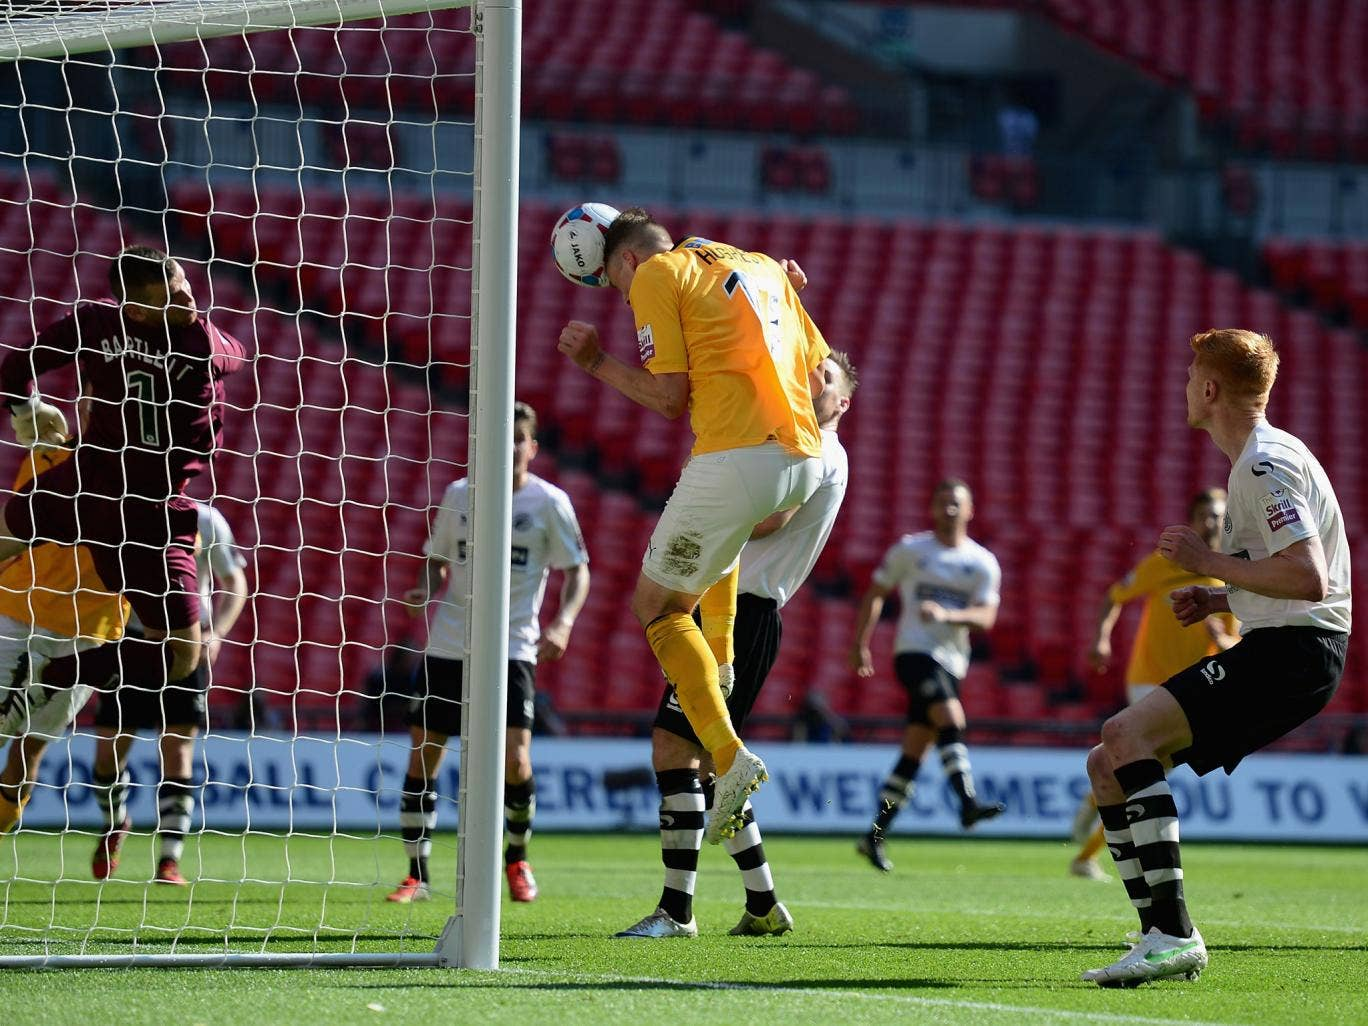 Liam Hughes opens the scoring for Cambridge at Wembley